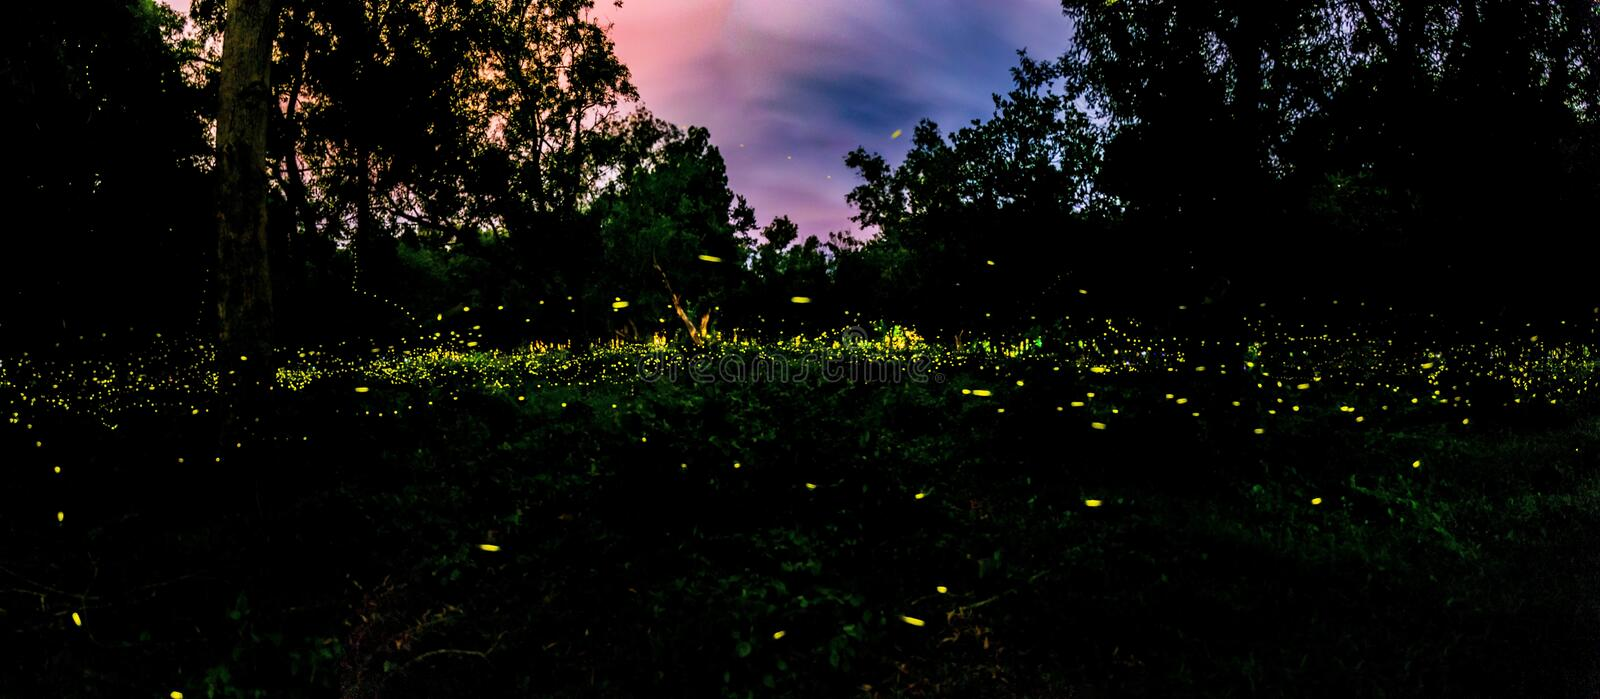 Firefly or Fireflies flying in the forest at night time in Prachinburi, Thailand. For background royalty free stock photo